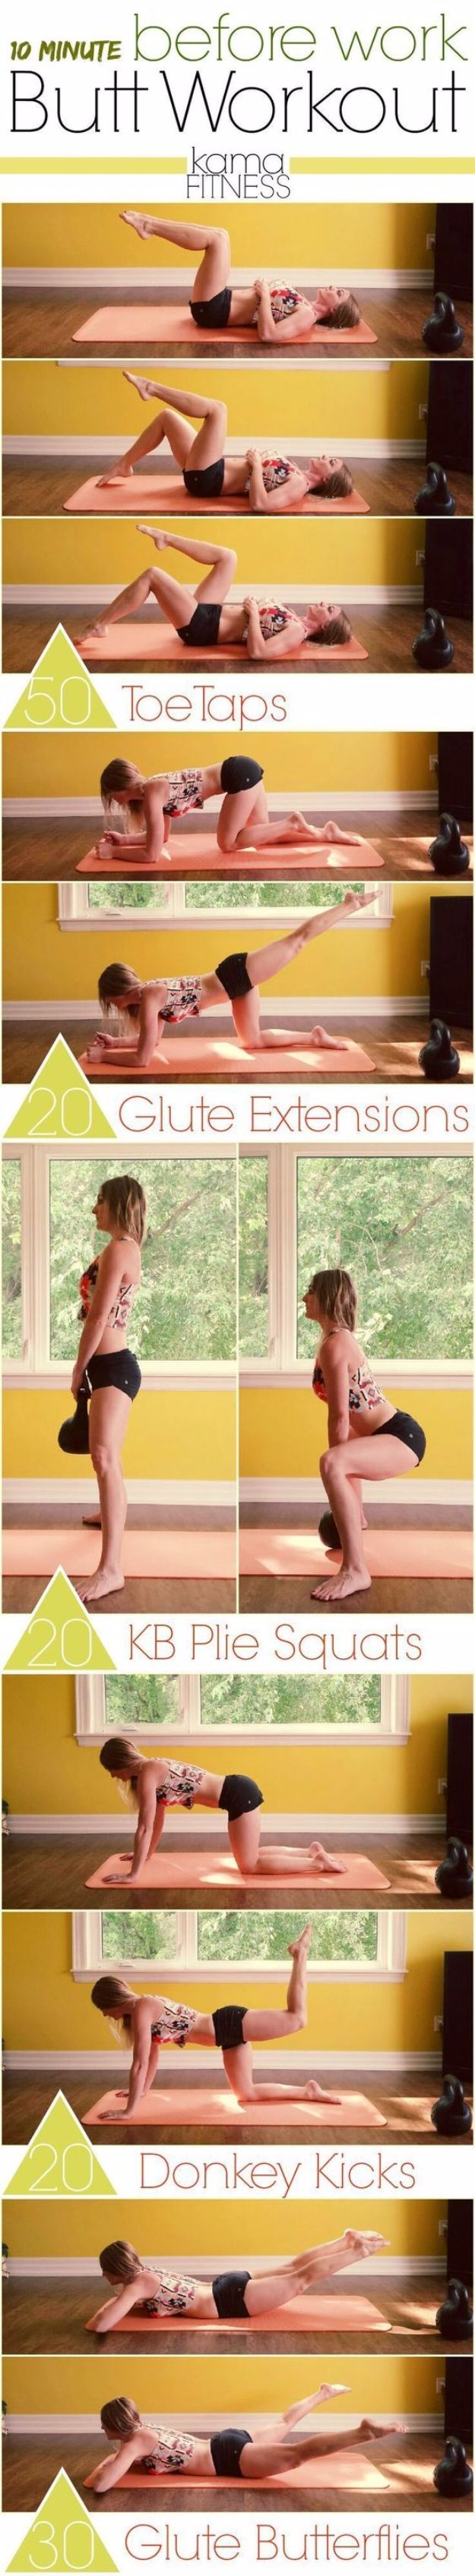 Best Quick At Home Workouts - 10 Minute Before work Butt workout - Easy Tutorials and Work Out Ideas for Strength Training and Exercises - Step by Step Tutorials for Butt Workouts, Abs Tummy and Stomach, Legs, Arms, Chest and Back - Fast 5 and 10 Minute Workouts You Can Do On Your Lunch Break, In Car, in Hotel #exercise #health